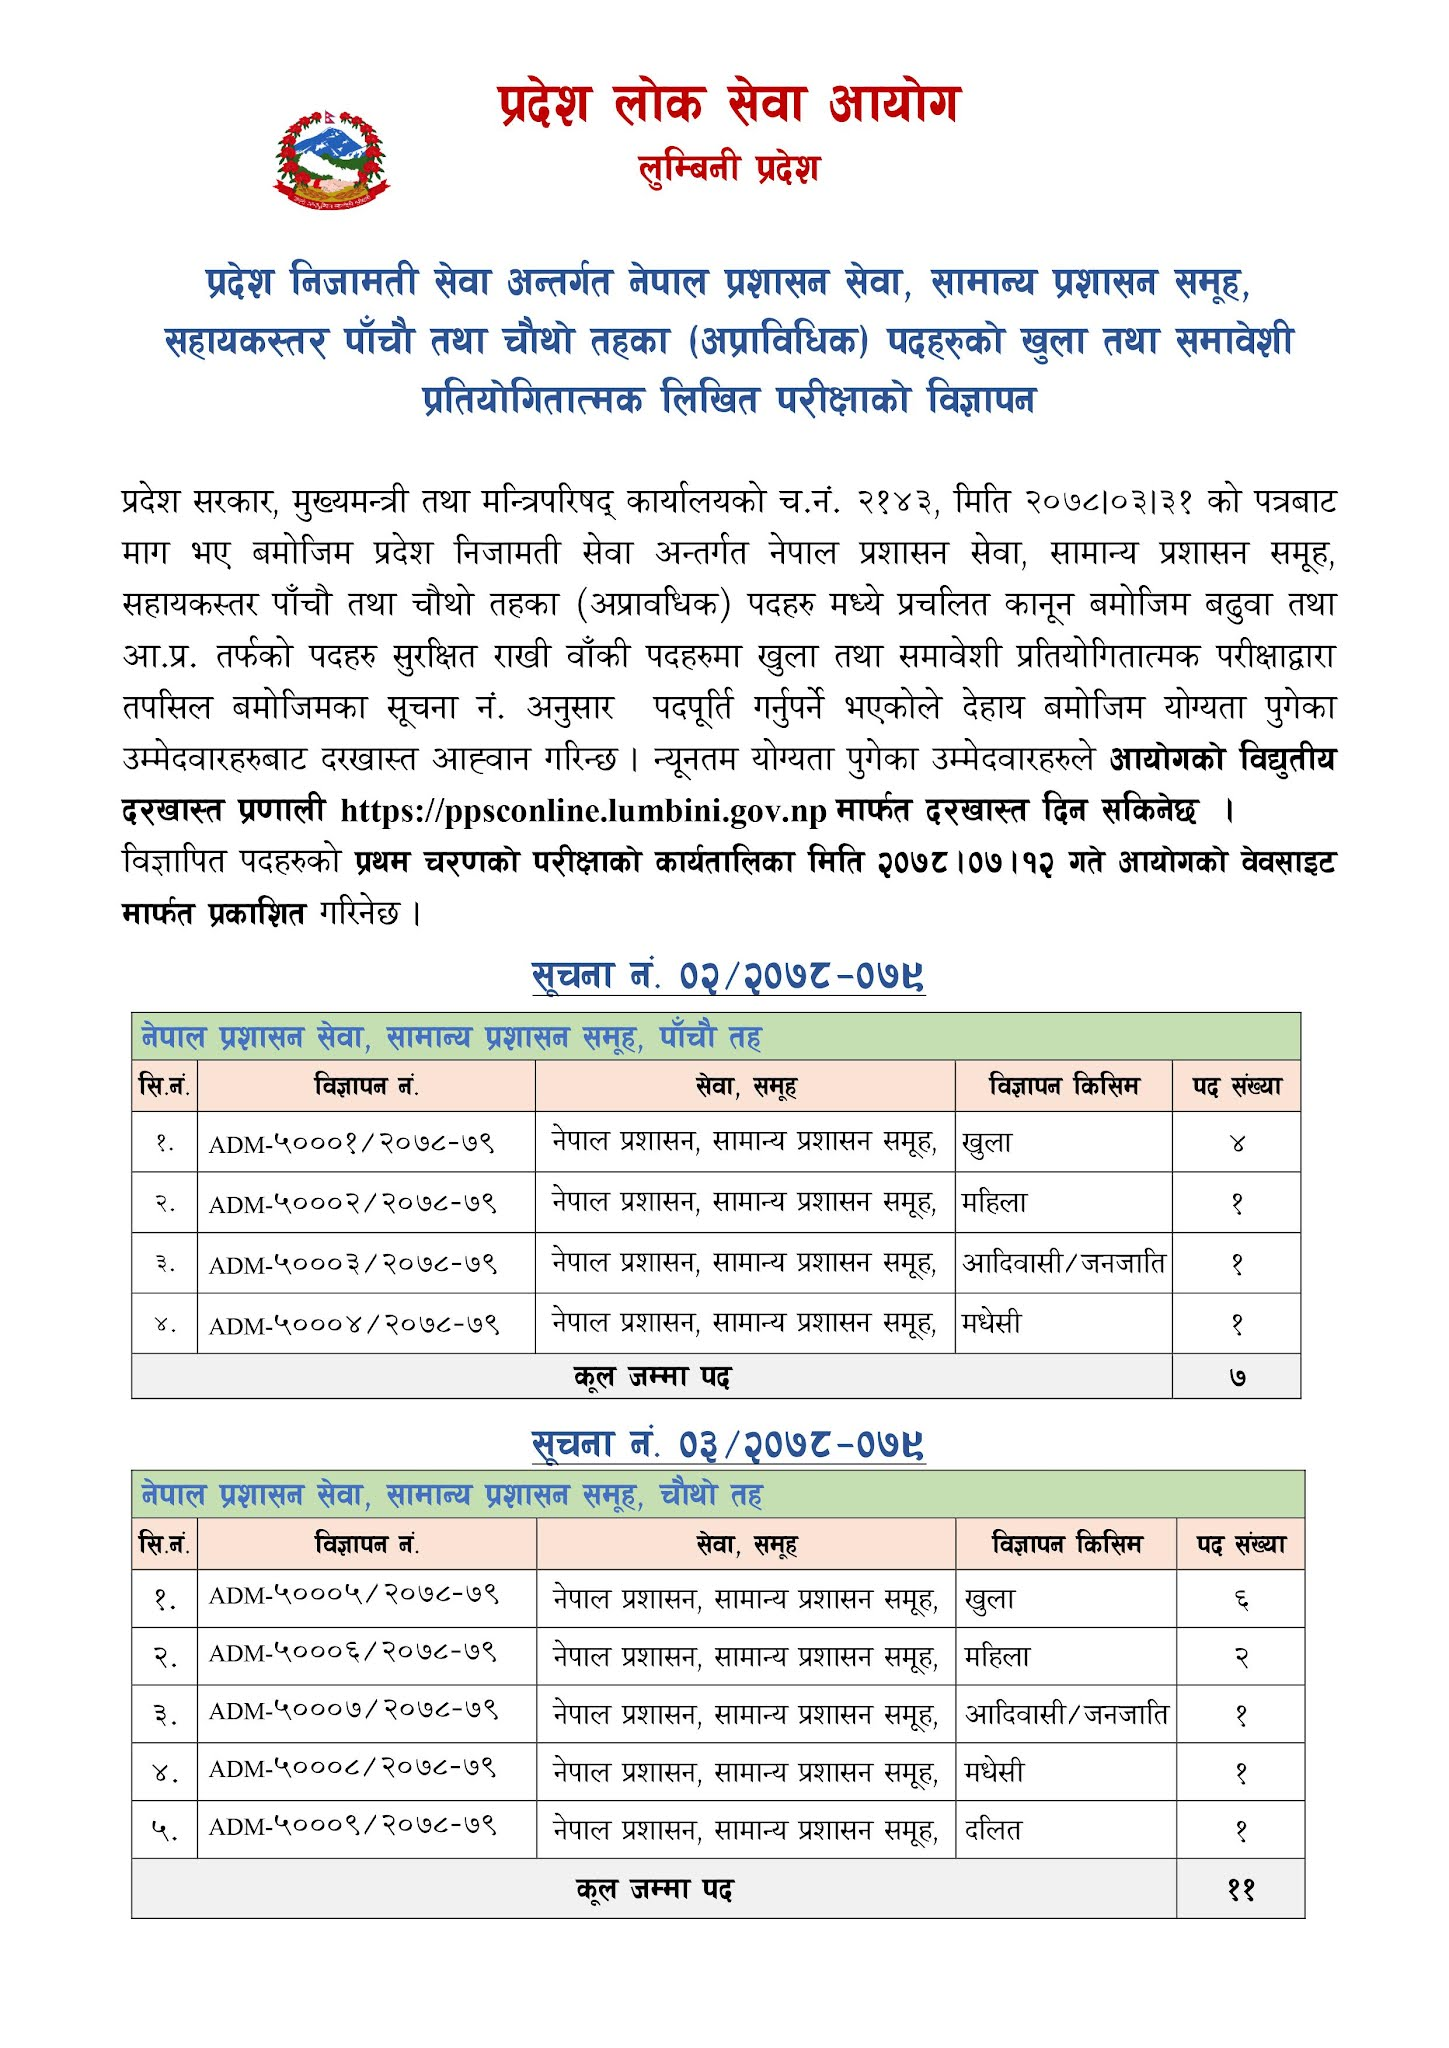 Advertisement of Competitive Written Exam for Lumbini Province Provincial Civil Service, Nepal Administration Service, General Administration Group, Assistant Level 5th and 4th (Non-Technical) posts.